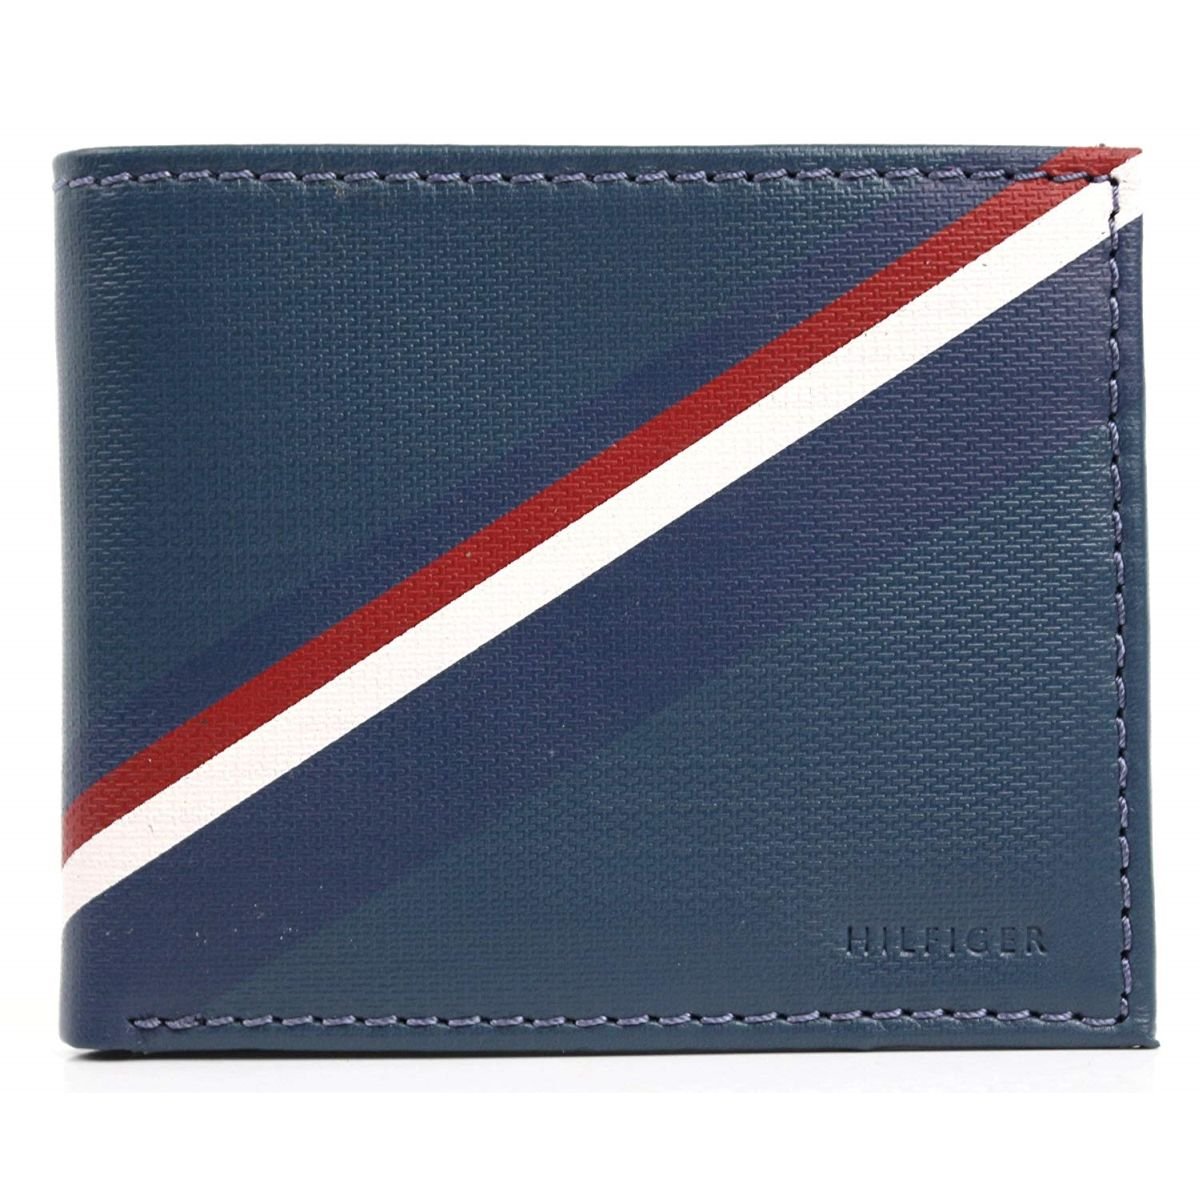 WALLET Tommy Hilfiger Leather Billfold Wallet - Navy